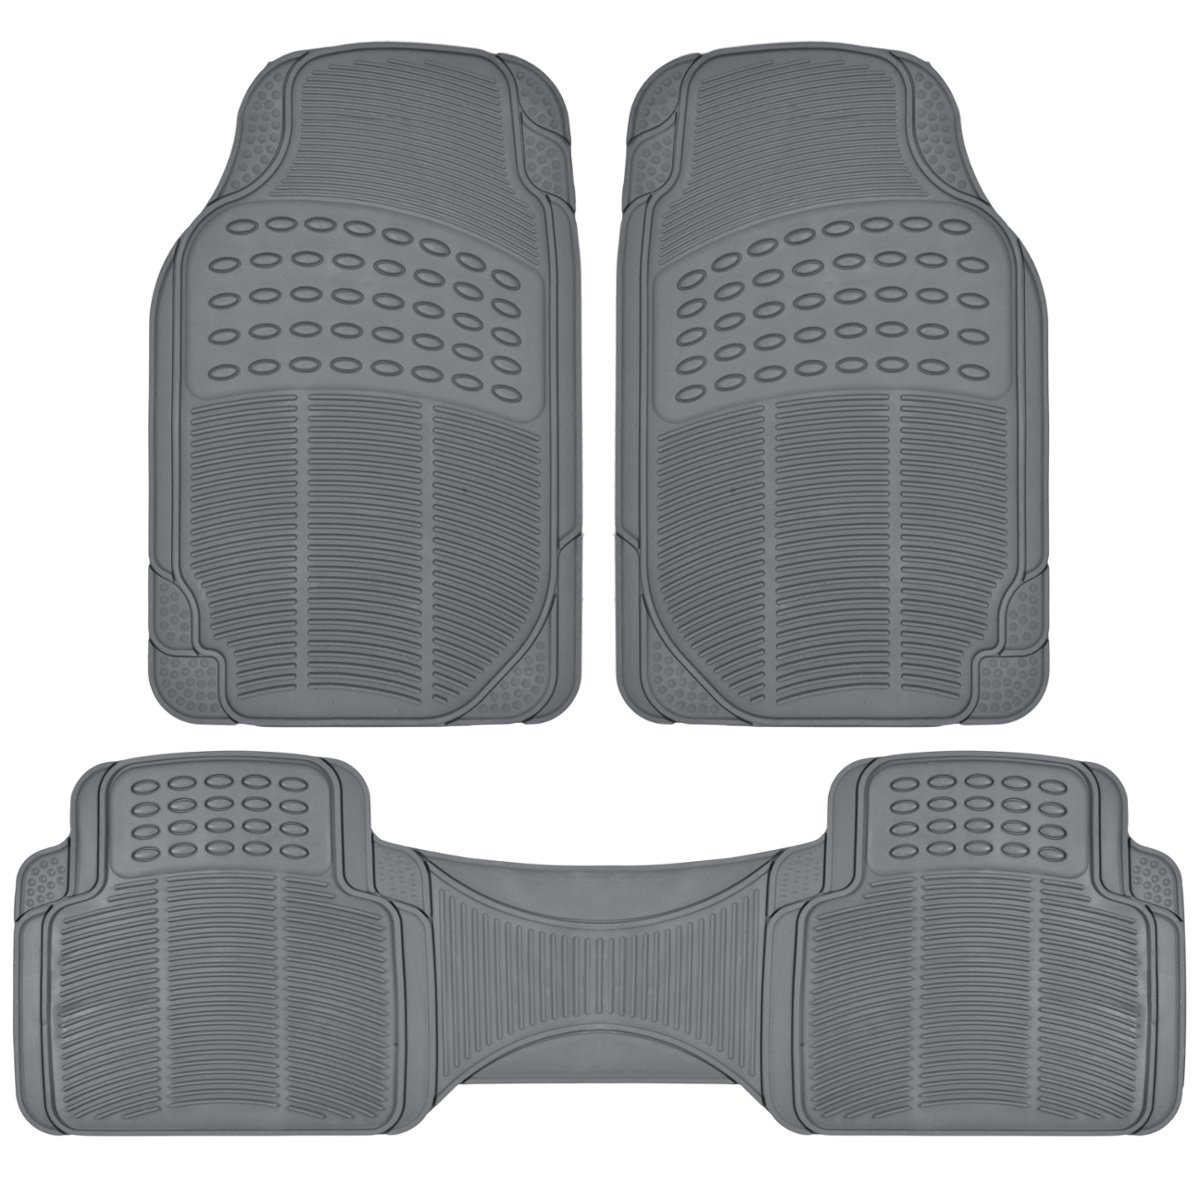 Amazon universal fit floor mats automotive bdk heavy duty car floor mats universal for car truck suv full 3pc set sciox Image collections